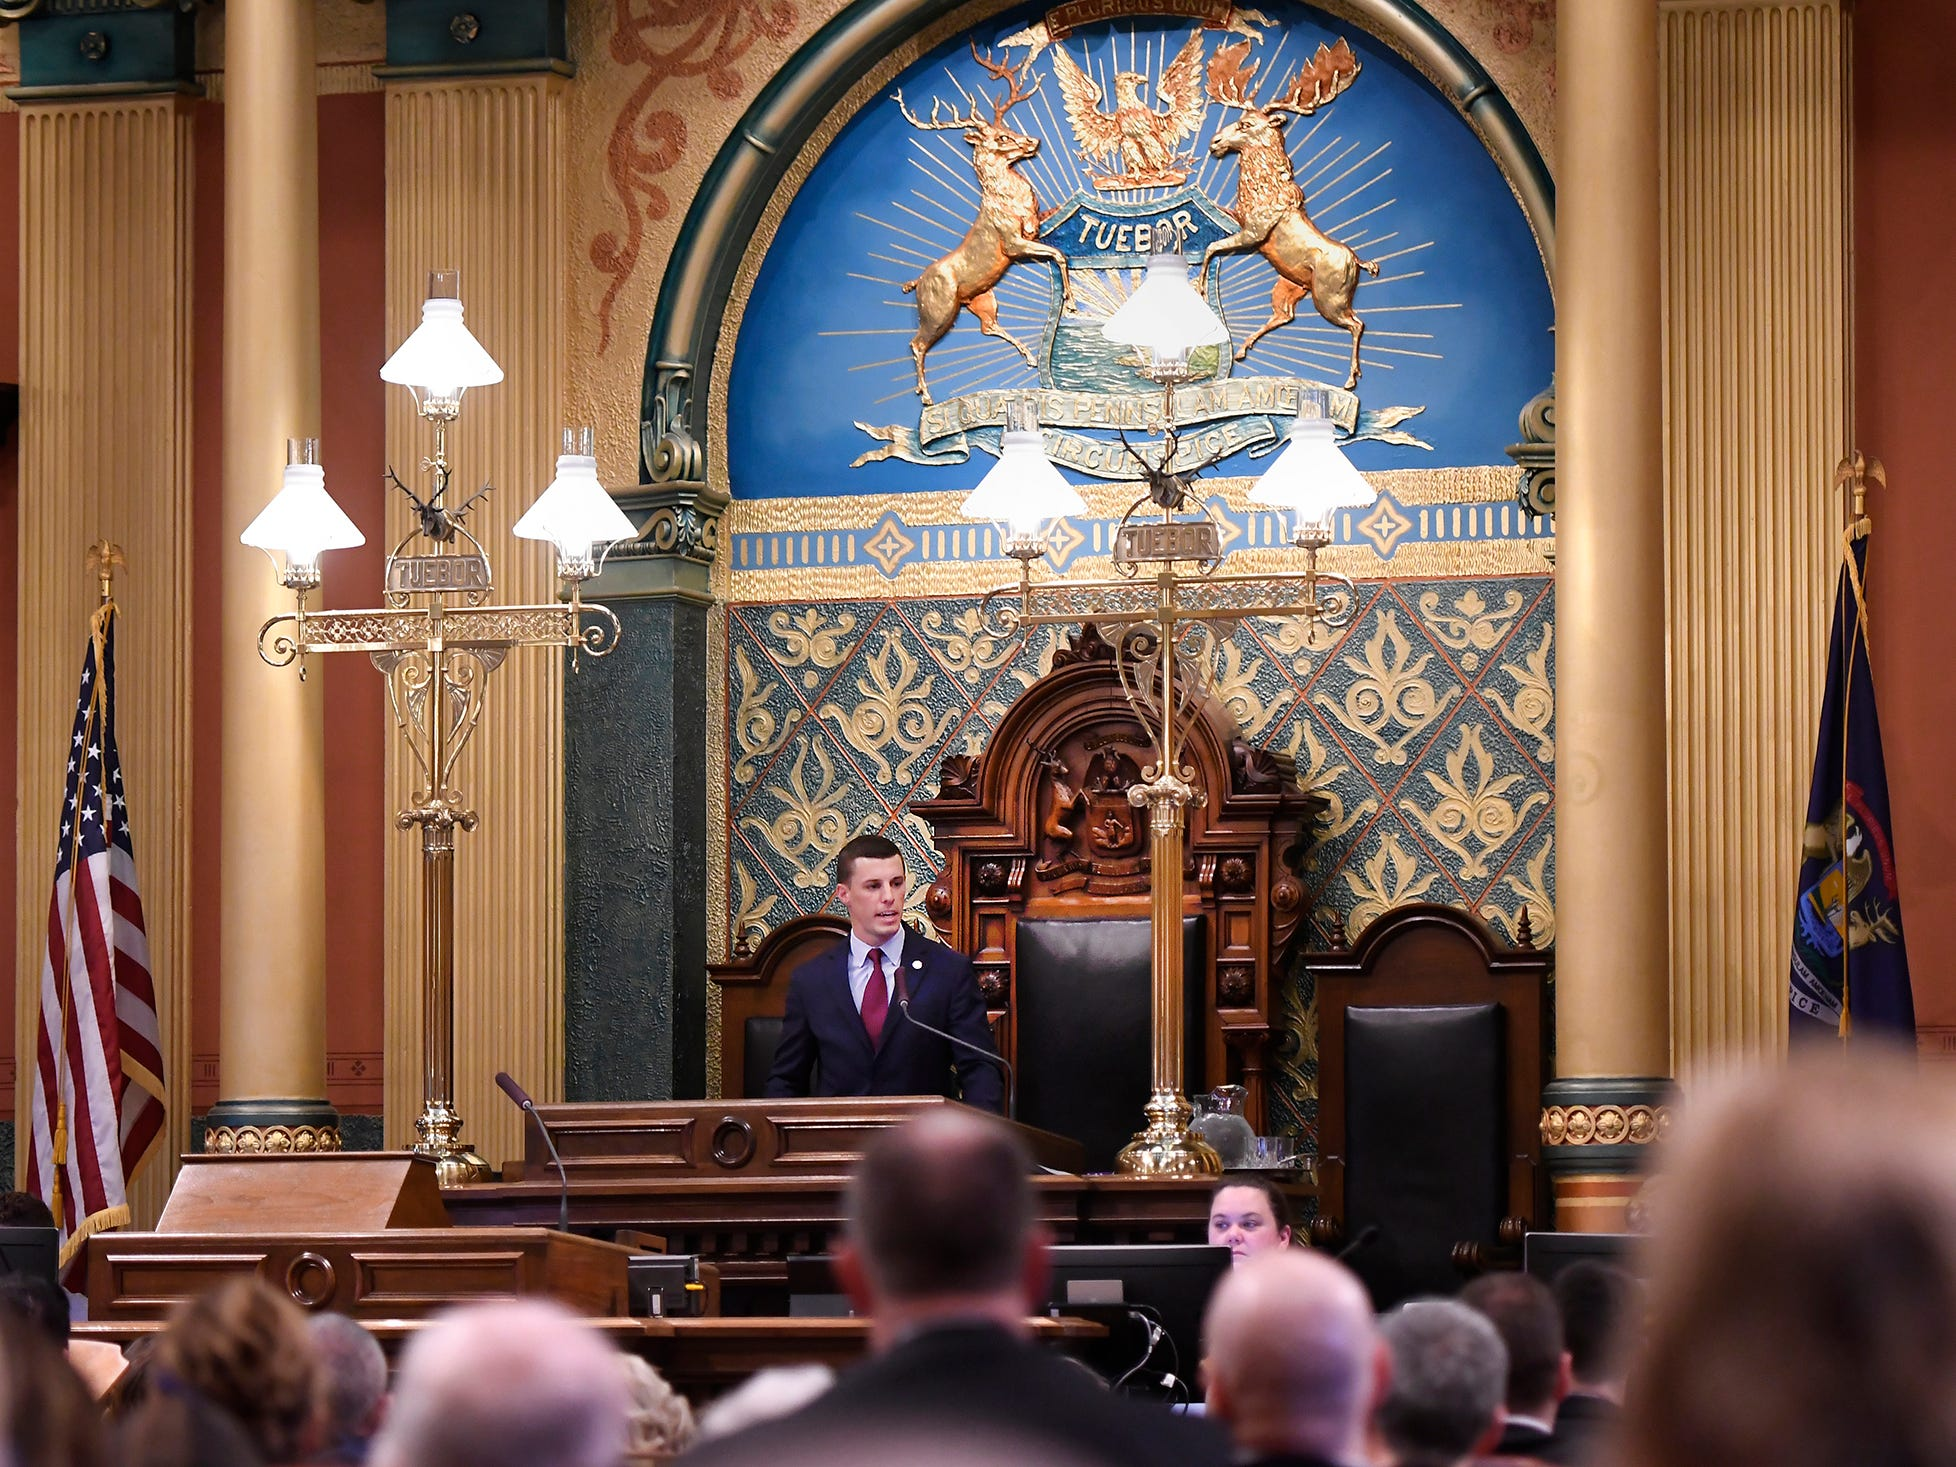 New Speaker of the House Lee Chatfield R-Levering, speaks to the house members and guests.